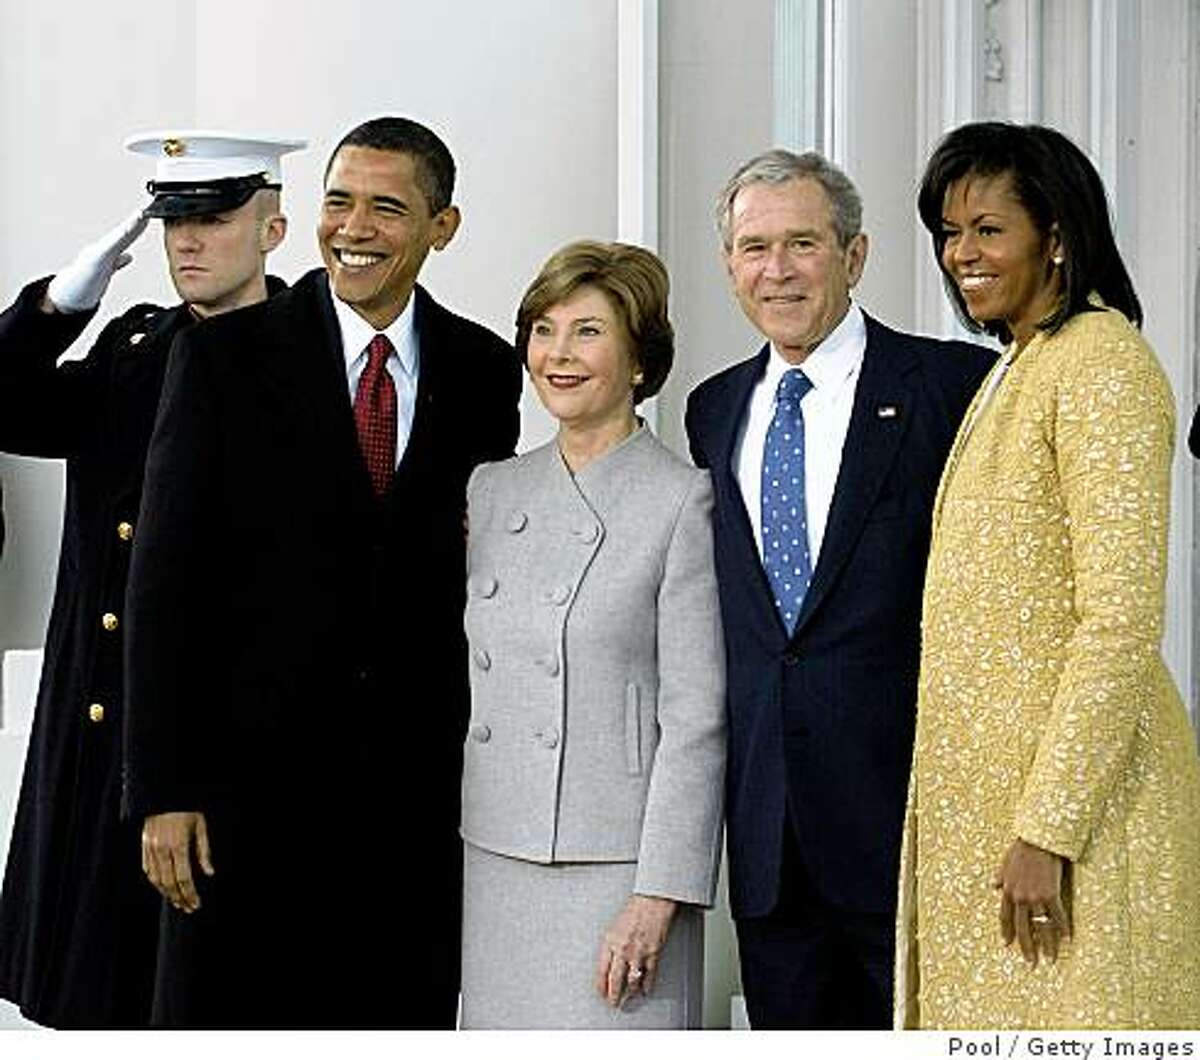 After the 2008 election, the Bush family invited the Obamas to the White House. Barack's favorite part of the tour was the gym, something he shared with President Bush. Michelle liked best her future dressing room.